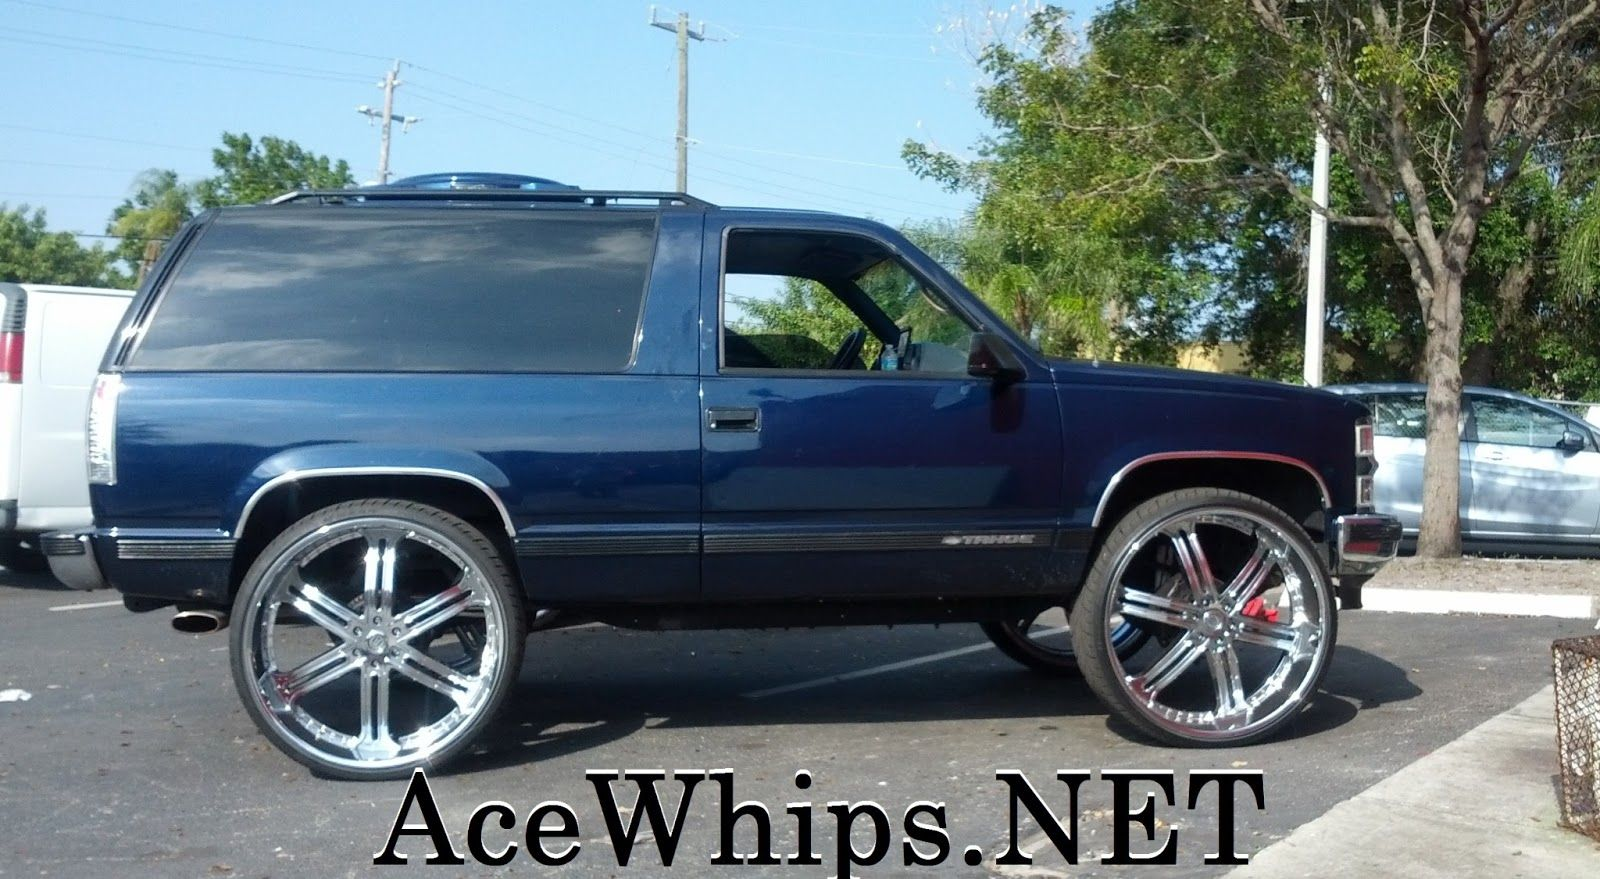 hight resolution of 30 inch rims on impala ace 1 wtw customs 2dr chevy tahoe on 30 versante rims